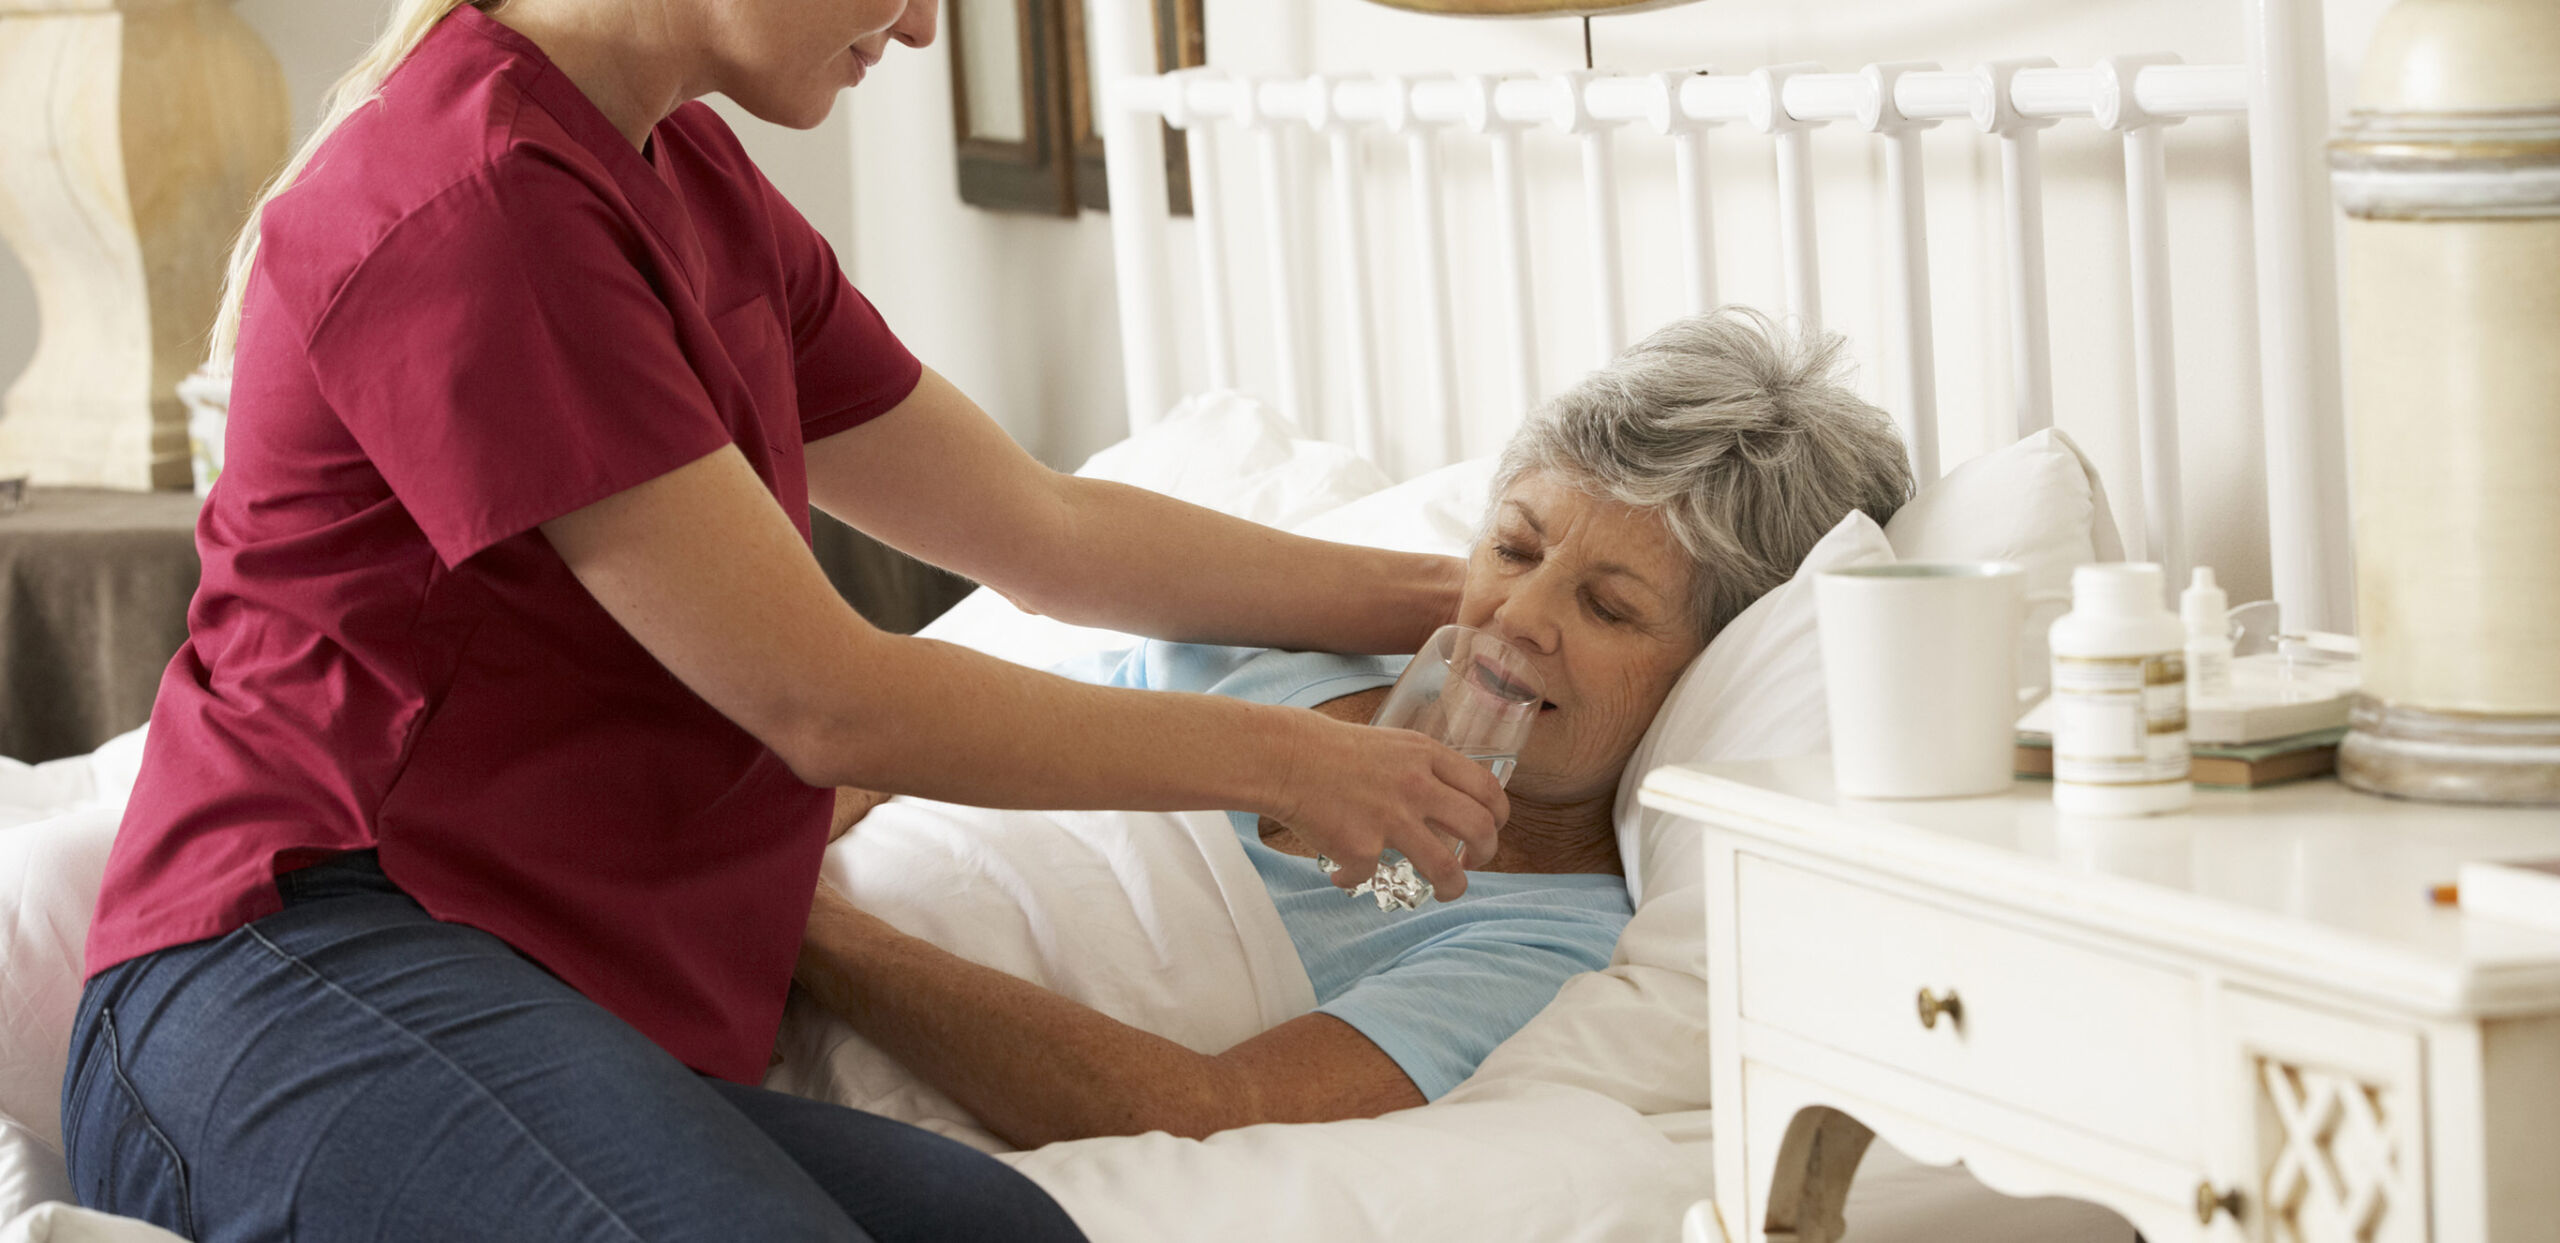 A palliative care provider helps a bed-bound patient take a sip of water from a glass in her home, Cooley Dickinson Medical Group VNA & Hospice, Northampton, MA 01060.